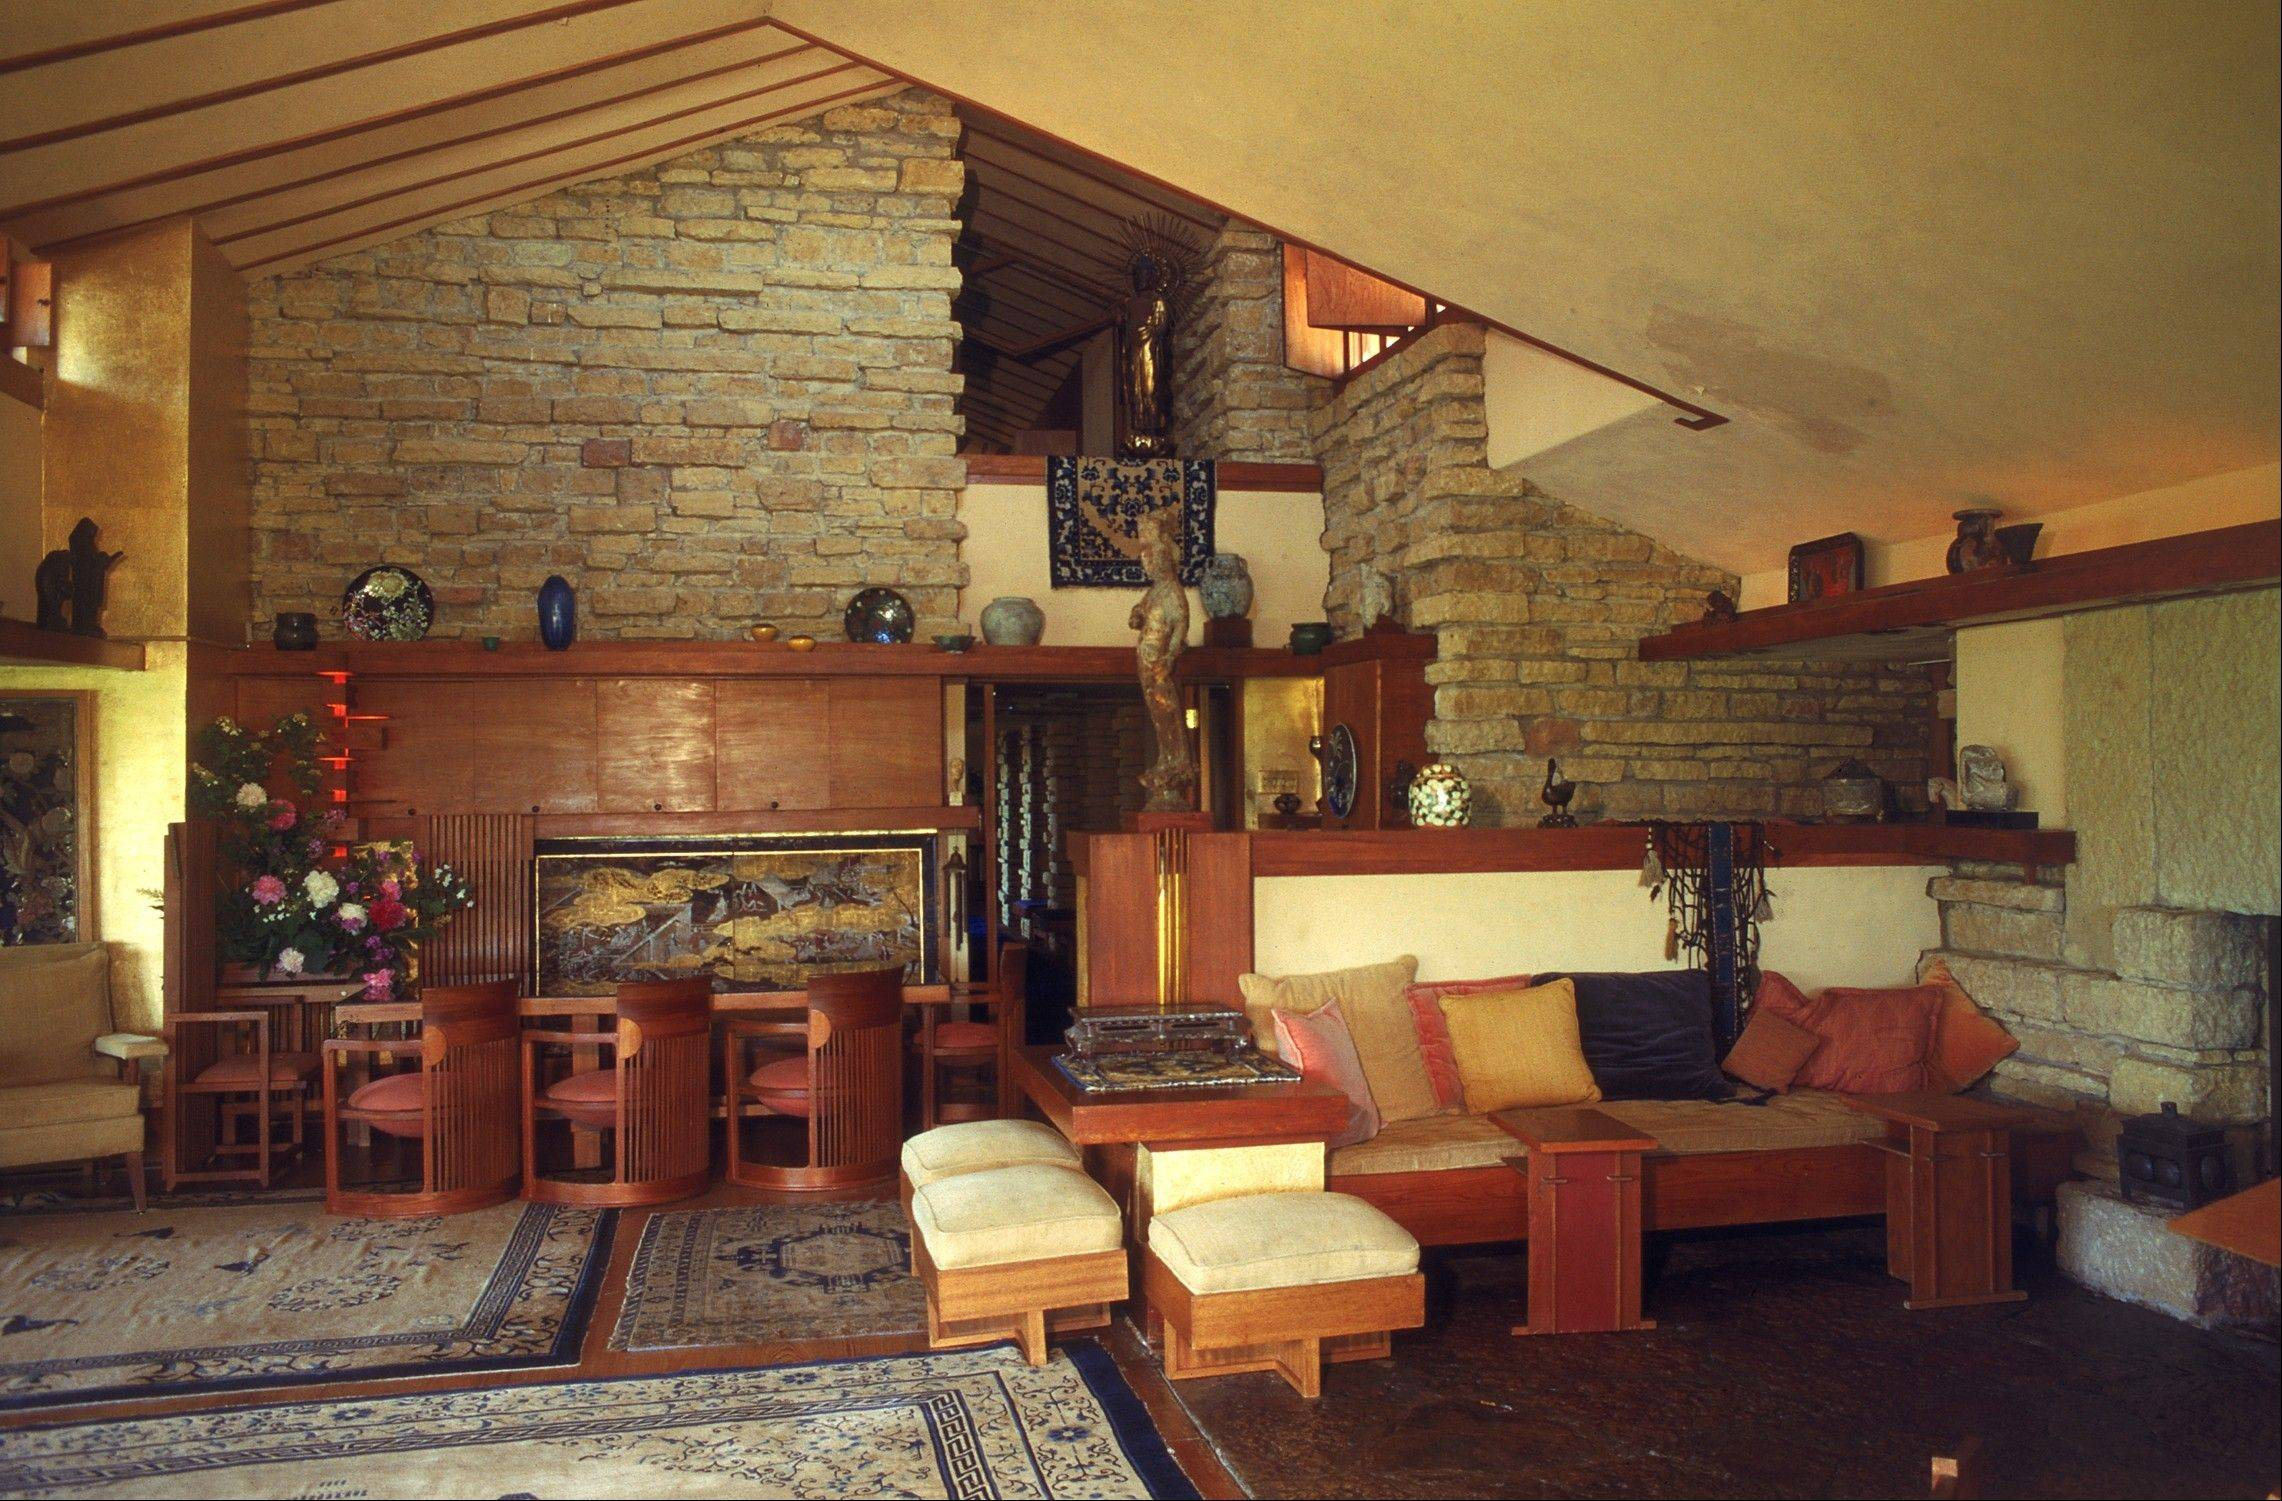 Choose among eight different tour options at Frank Lloyd Wright's Taliesin, one hour west of Madison, Wis.